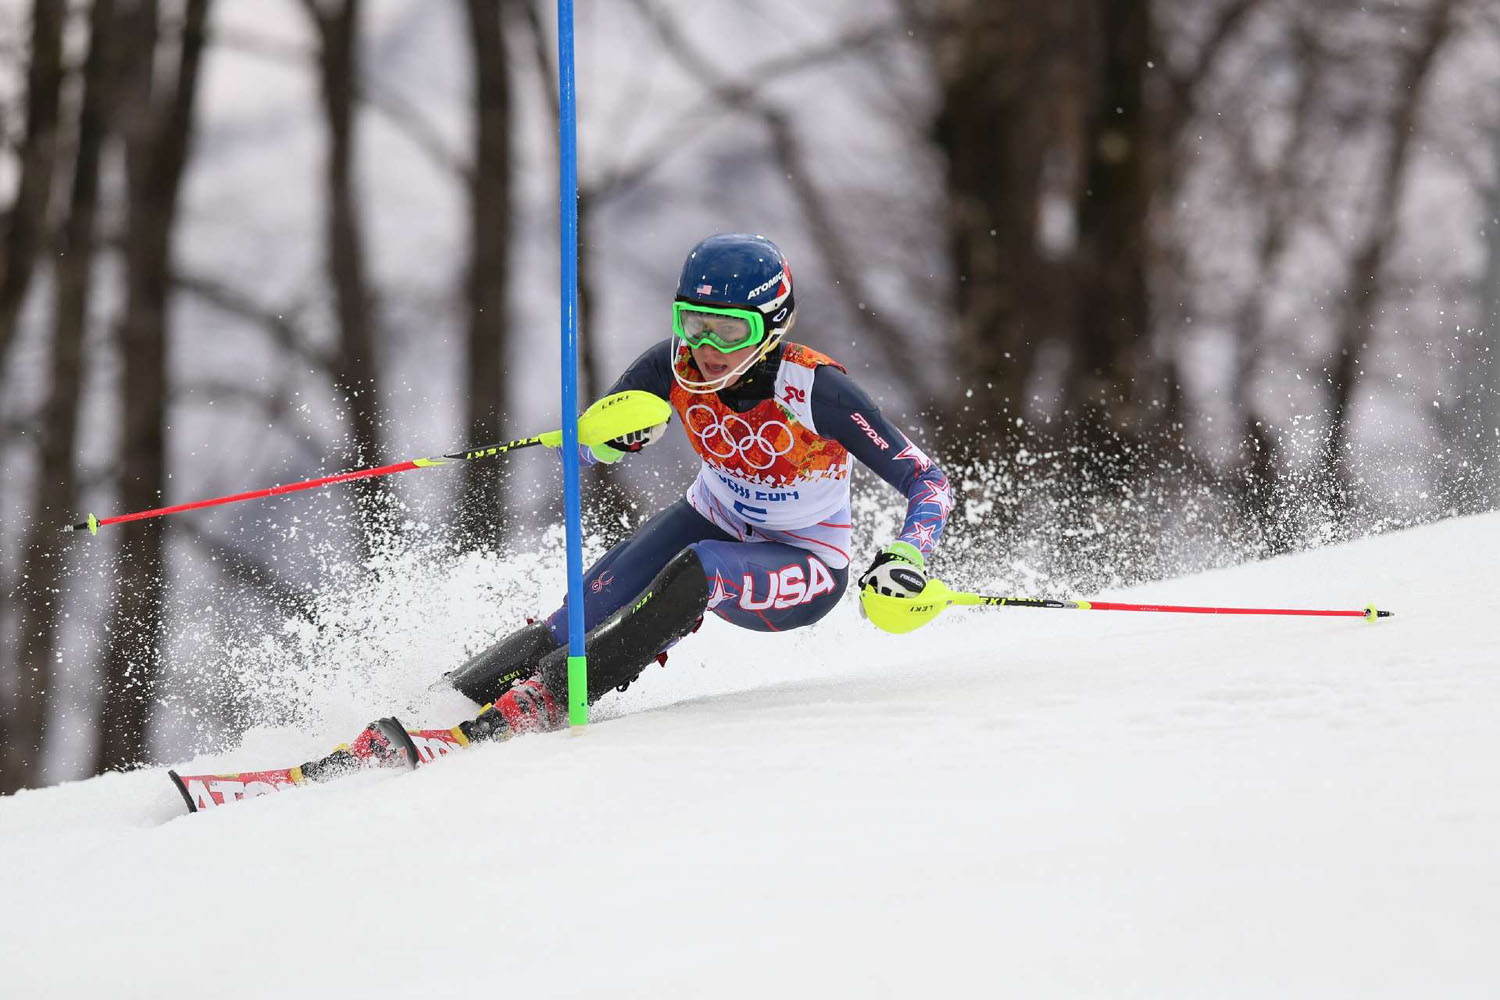 Mikaela Shiffrin in action for the USA at the Winter Olympics in Sochi.